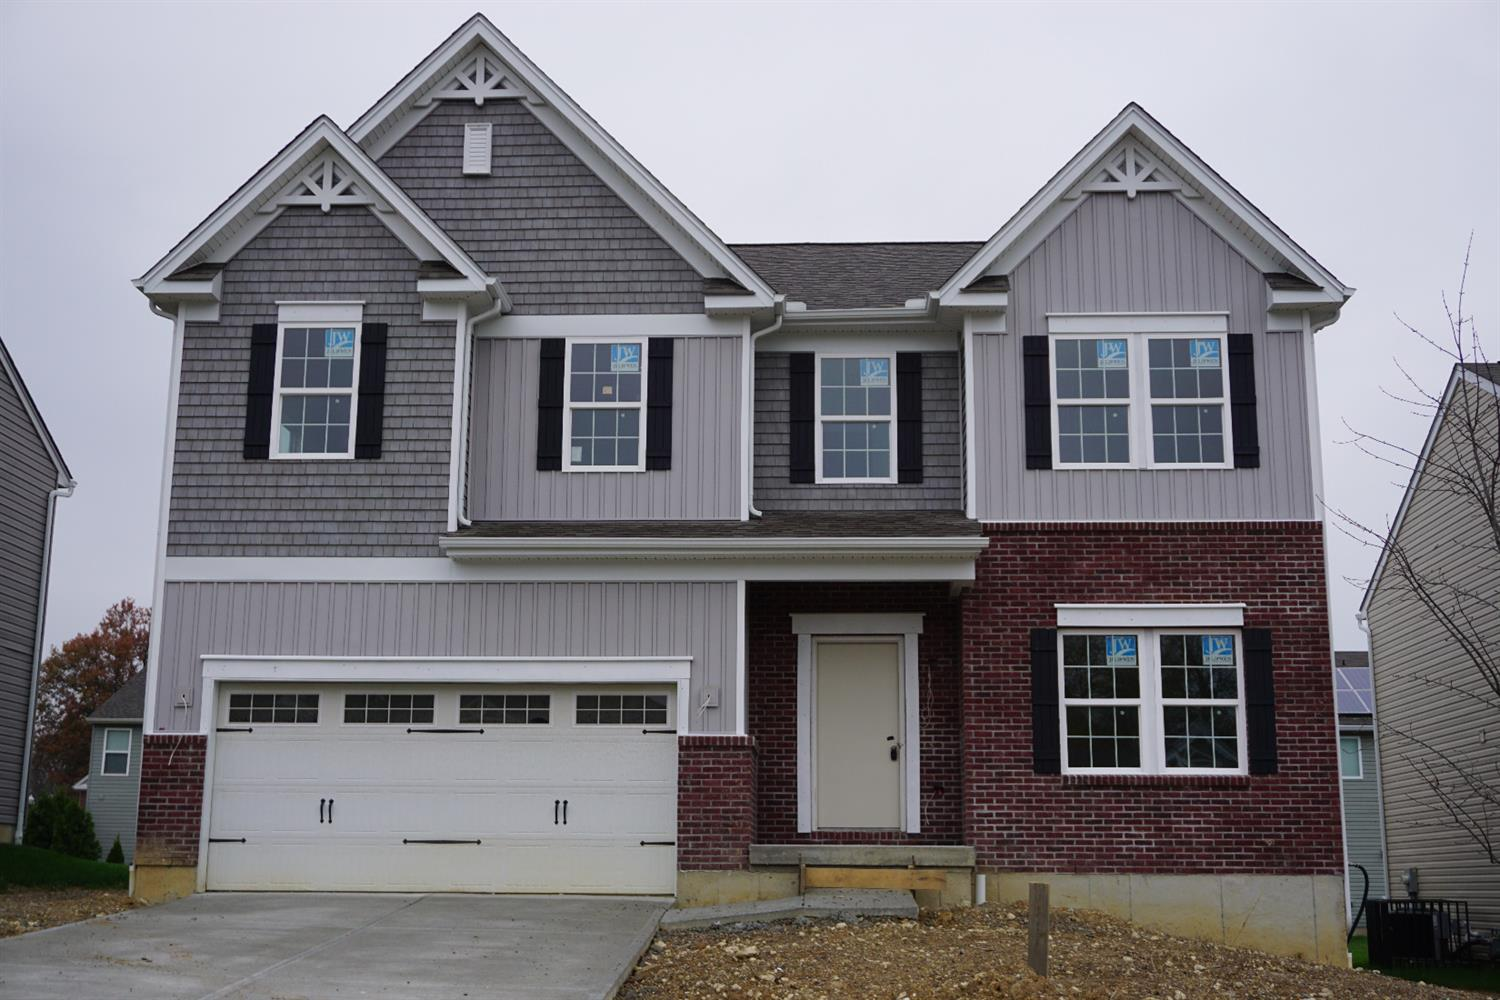 The Birmingham from Maronda Homes includes over 2830 sq ft, open floorplan, huge master, 9' ceilings. A must see...